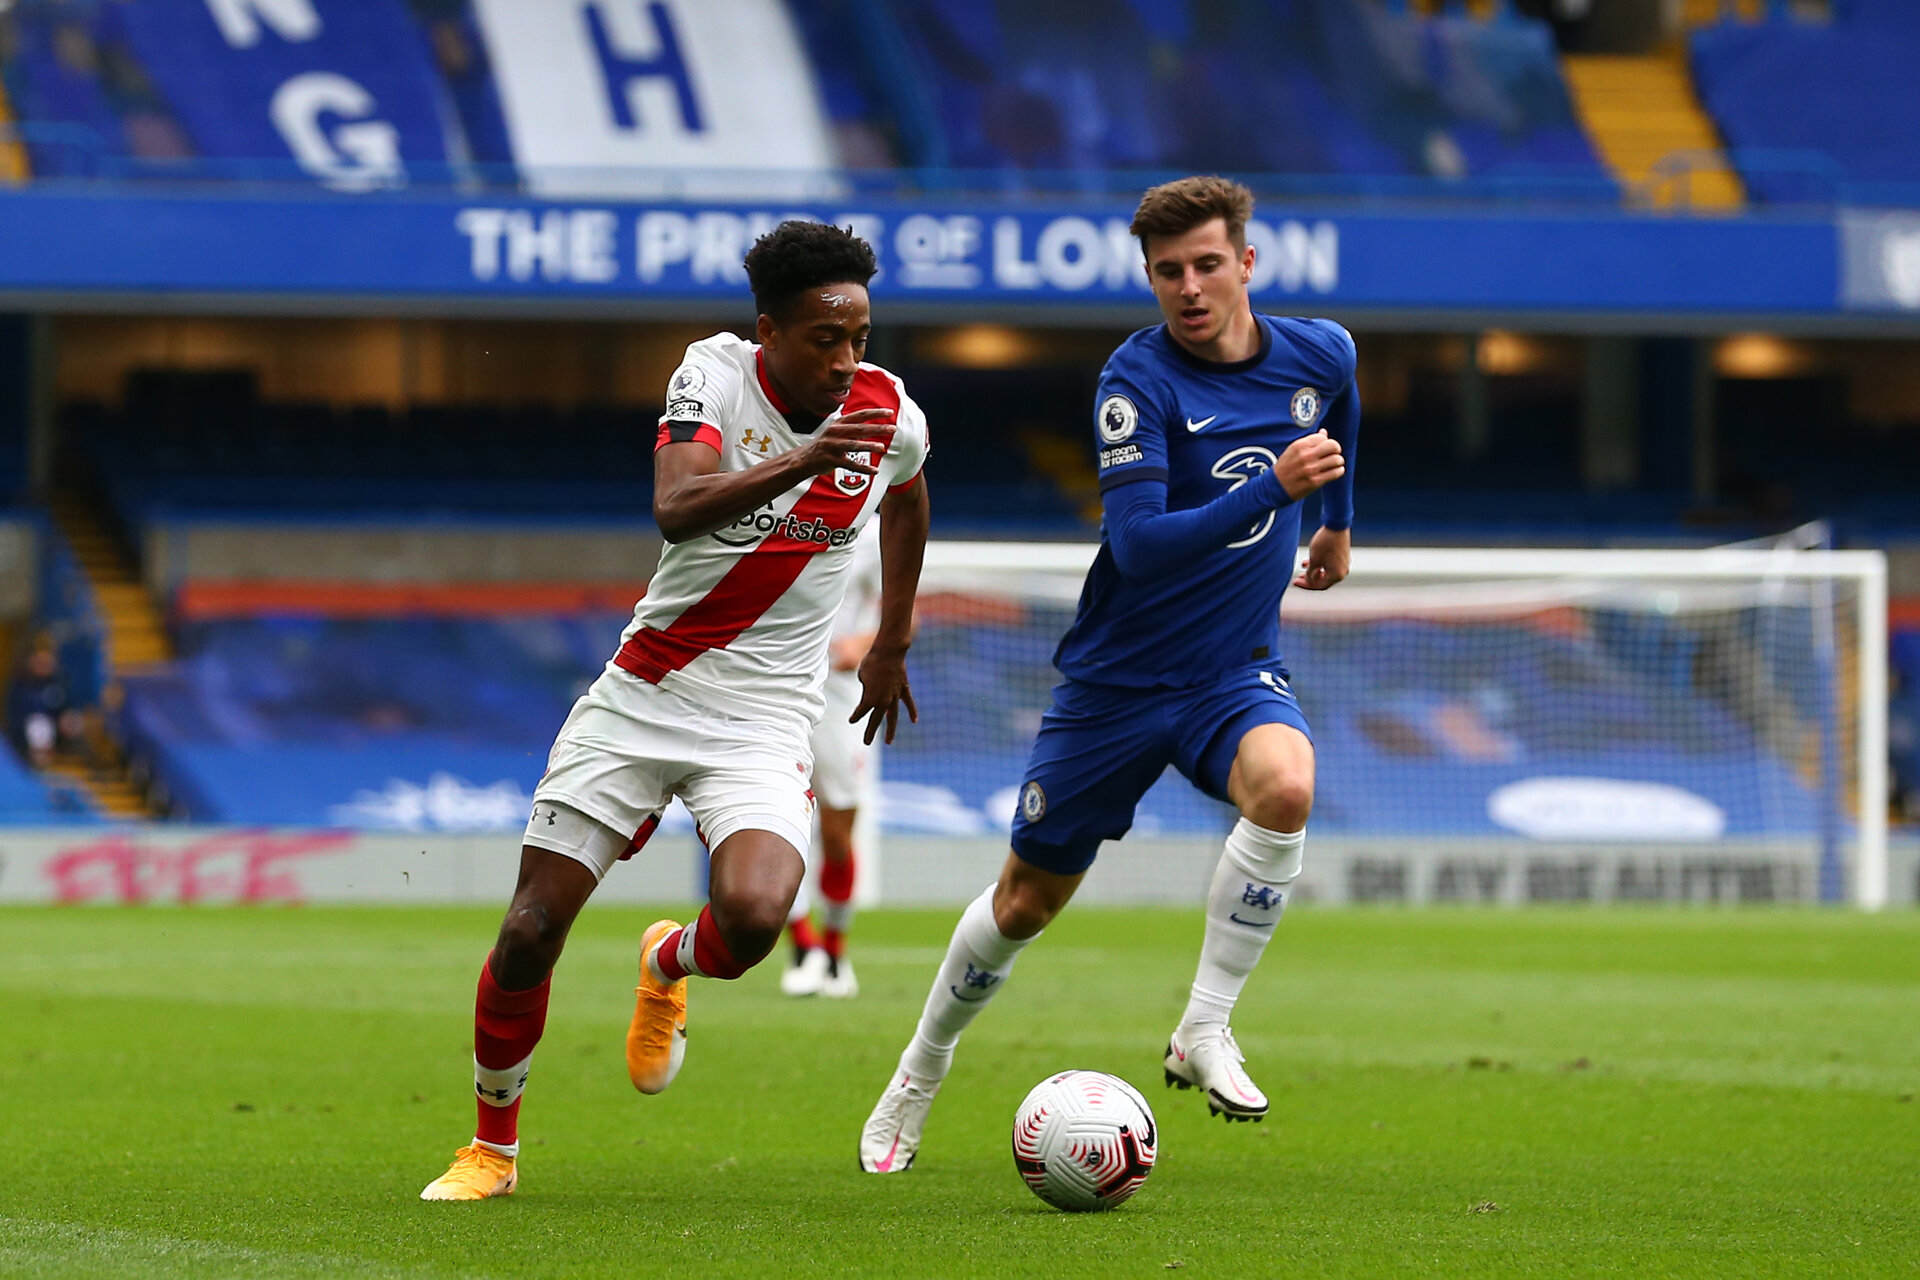 LONDON, ENGLAND - OCTOBER 17:  Kyle Walker-Peters (L) of Southampton and Mason Mount (R) of Chelsea during the Premier League match between Chelsea and Southampton at Stamford Bridge on October 17, 2020 in London, United Kingdom. Sporting stadiums around the UK remain under strict restrictions due to the Coronavirus Pandemic as Government social distancing laws prohibit fans inside venues resulting in games being played behind closed doors. (Photo by Matt Watson/Southampton FC via Getty Images)